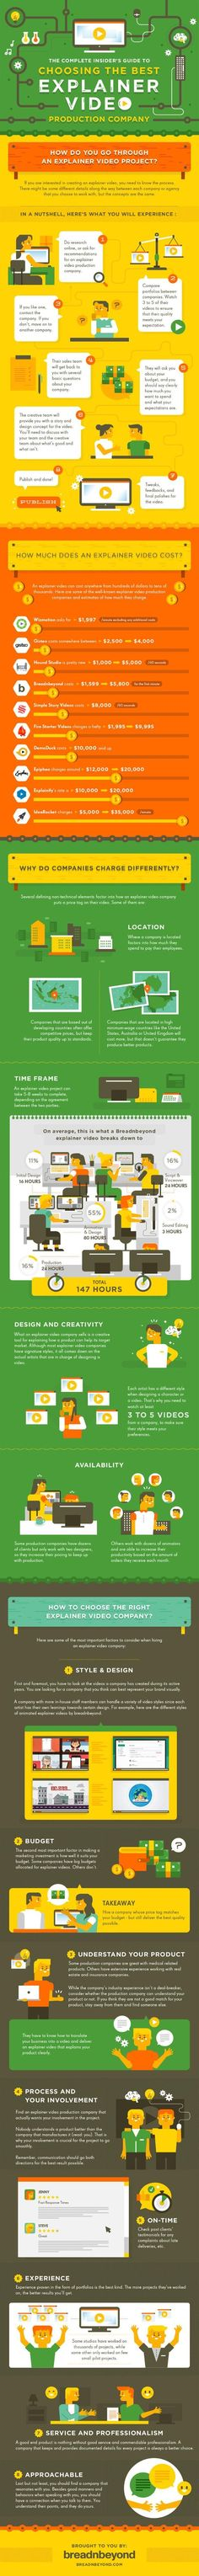 Choosing an Explainer Video Production Company: A Complete Guide | Infographic